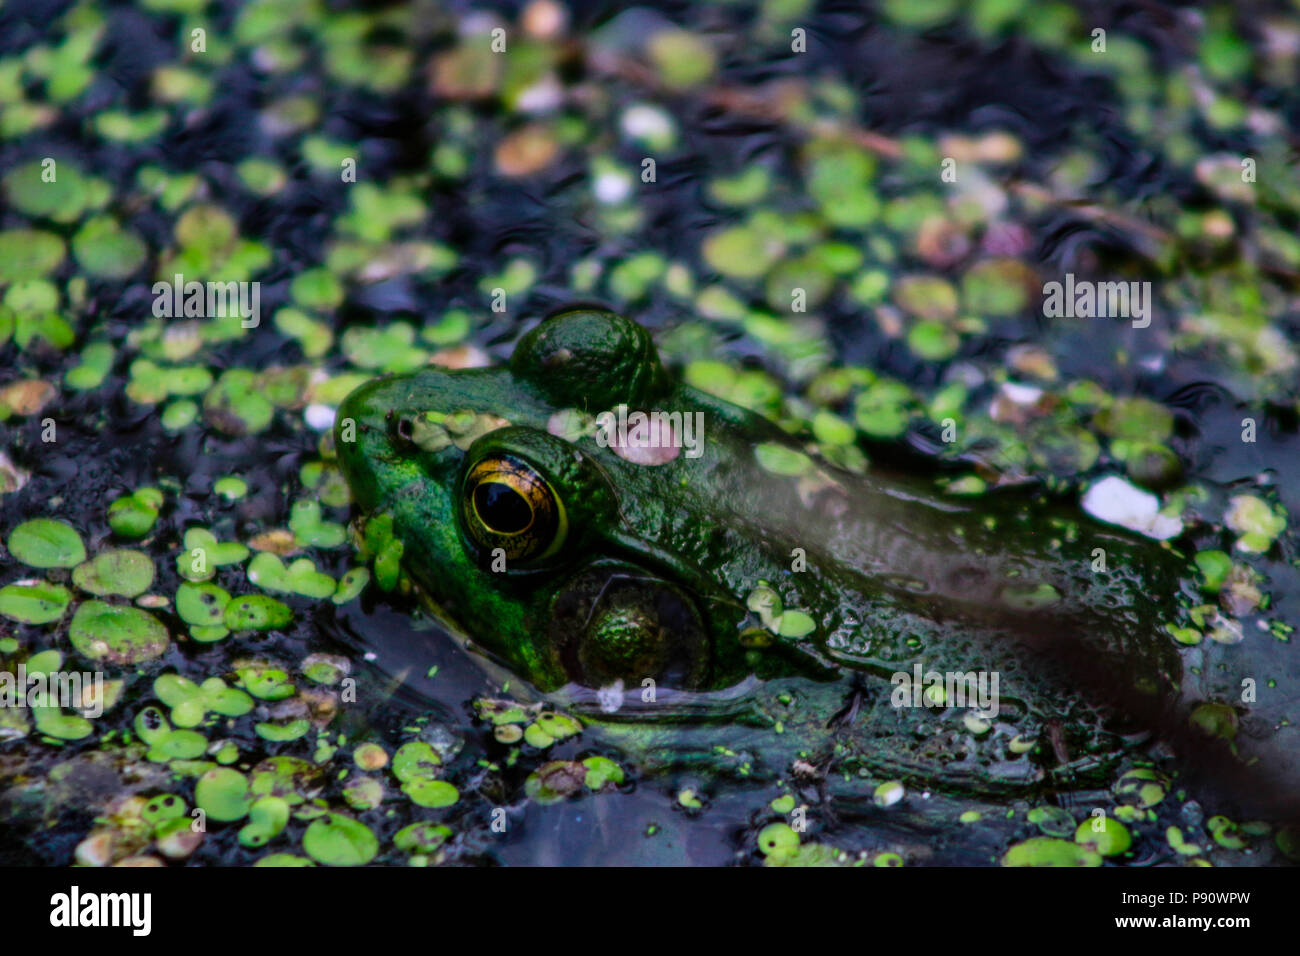 Northern Green Frog sunning itself on a rock. Also known as the American Common Frog. Don Valley Brickworks Park, Toronto, Ontario, Canada.. - Stock Image